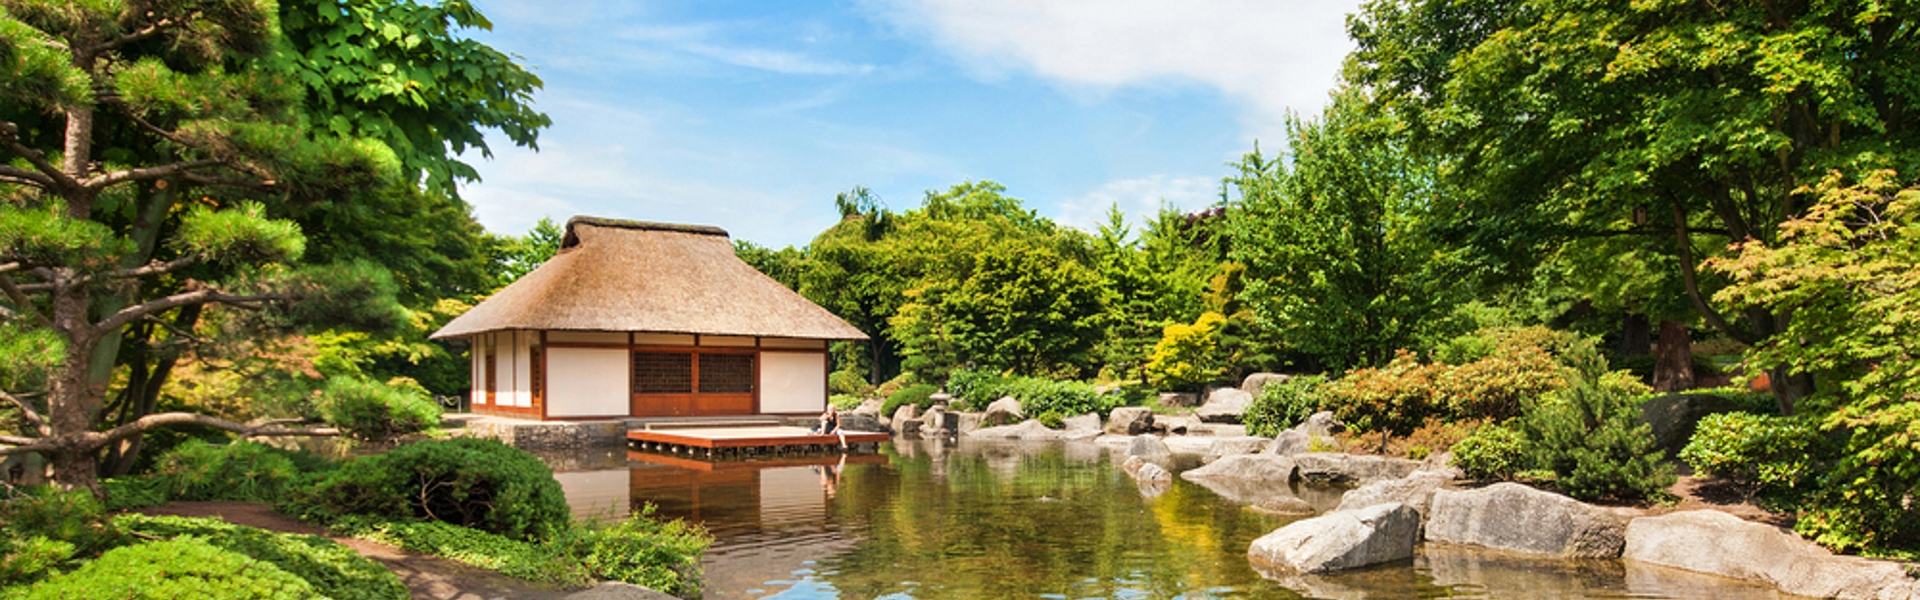 A traditional tea house on a pond, Kyoto